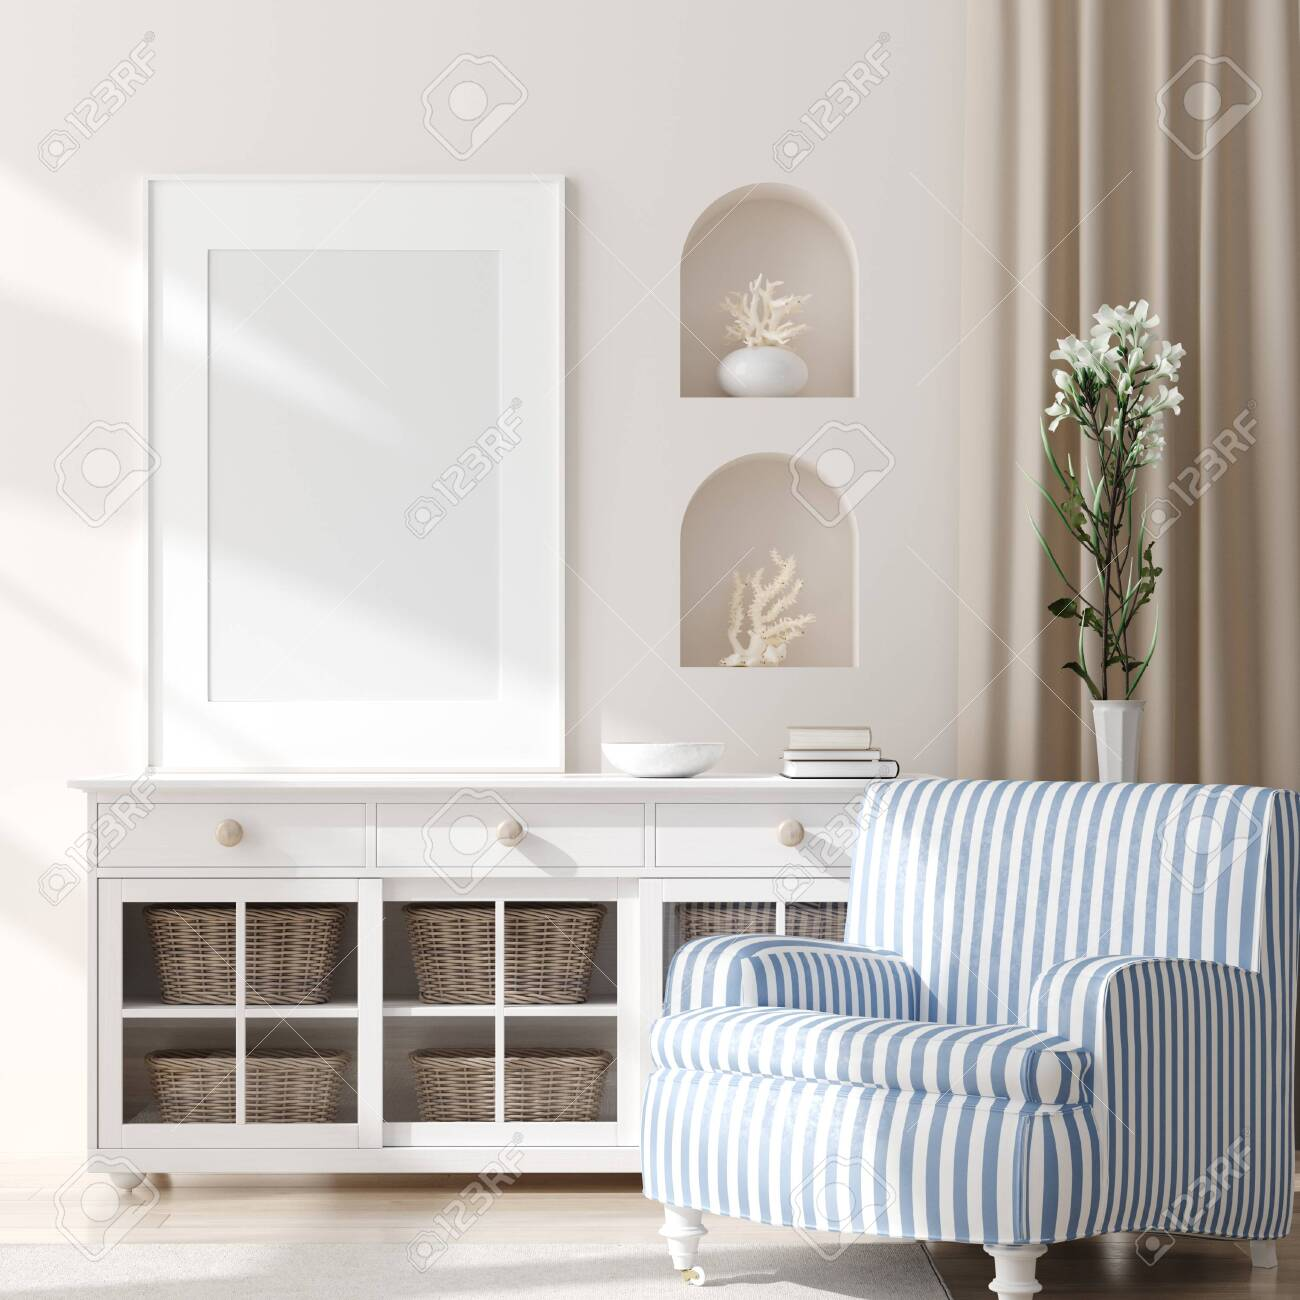 Mock Up Frame In Home Interior Background Coastal Style Living Stock Photo Picture And Royalty Free Image Image 124697976